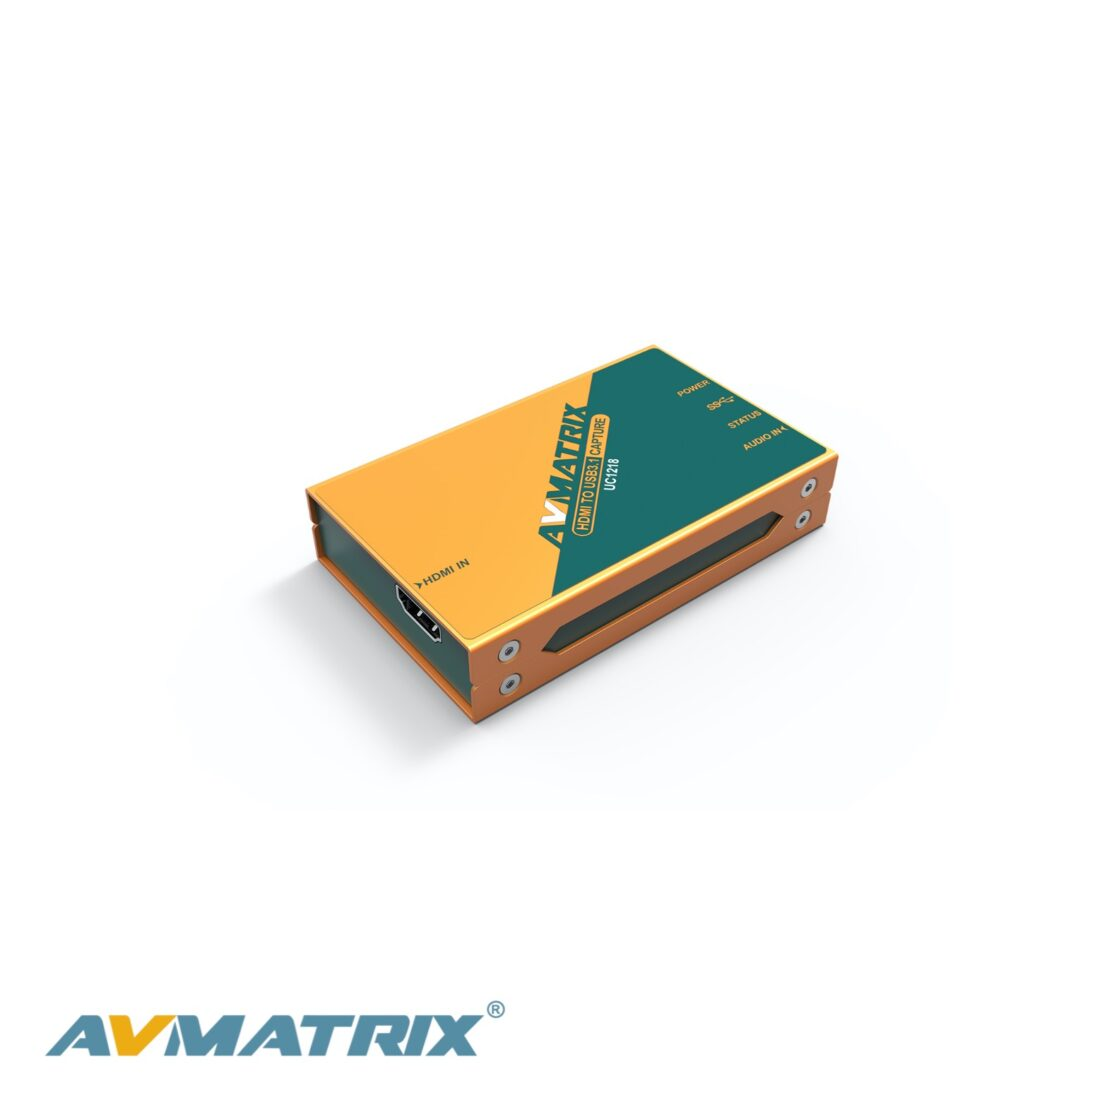 AVMatrix UC1218 main